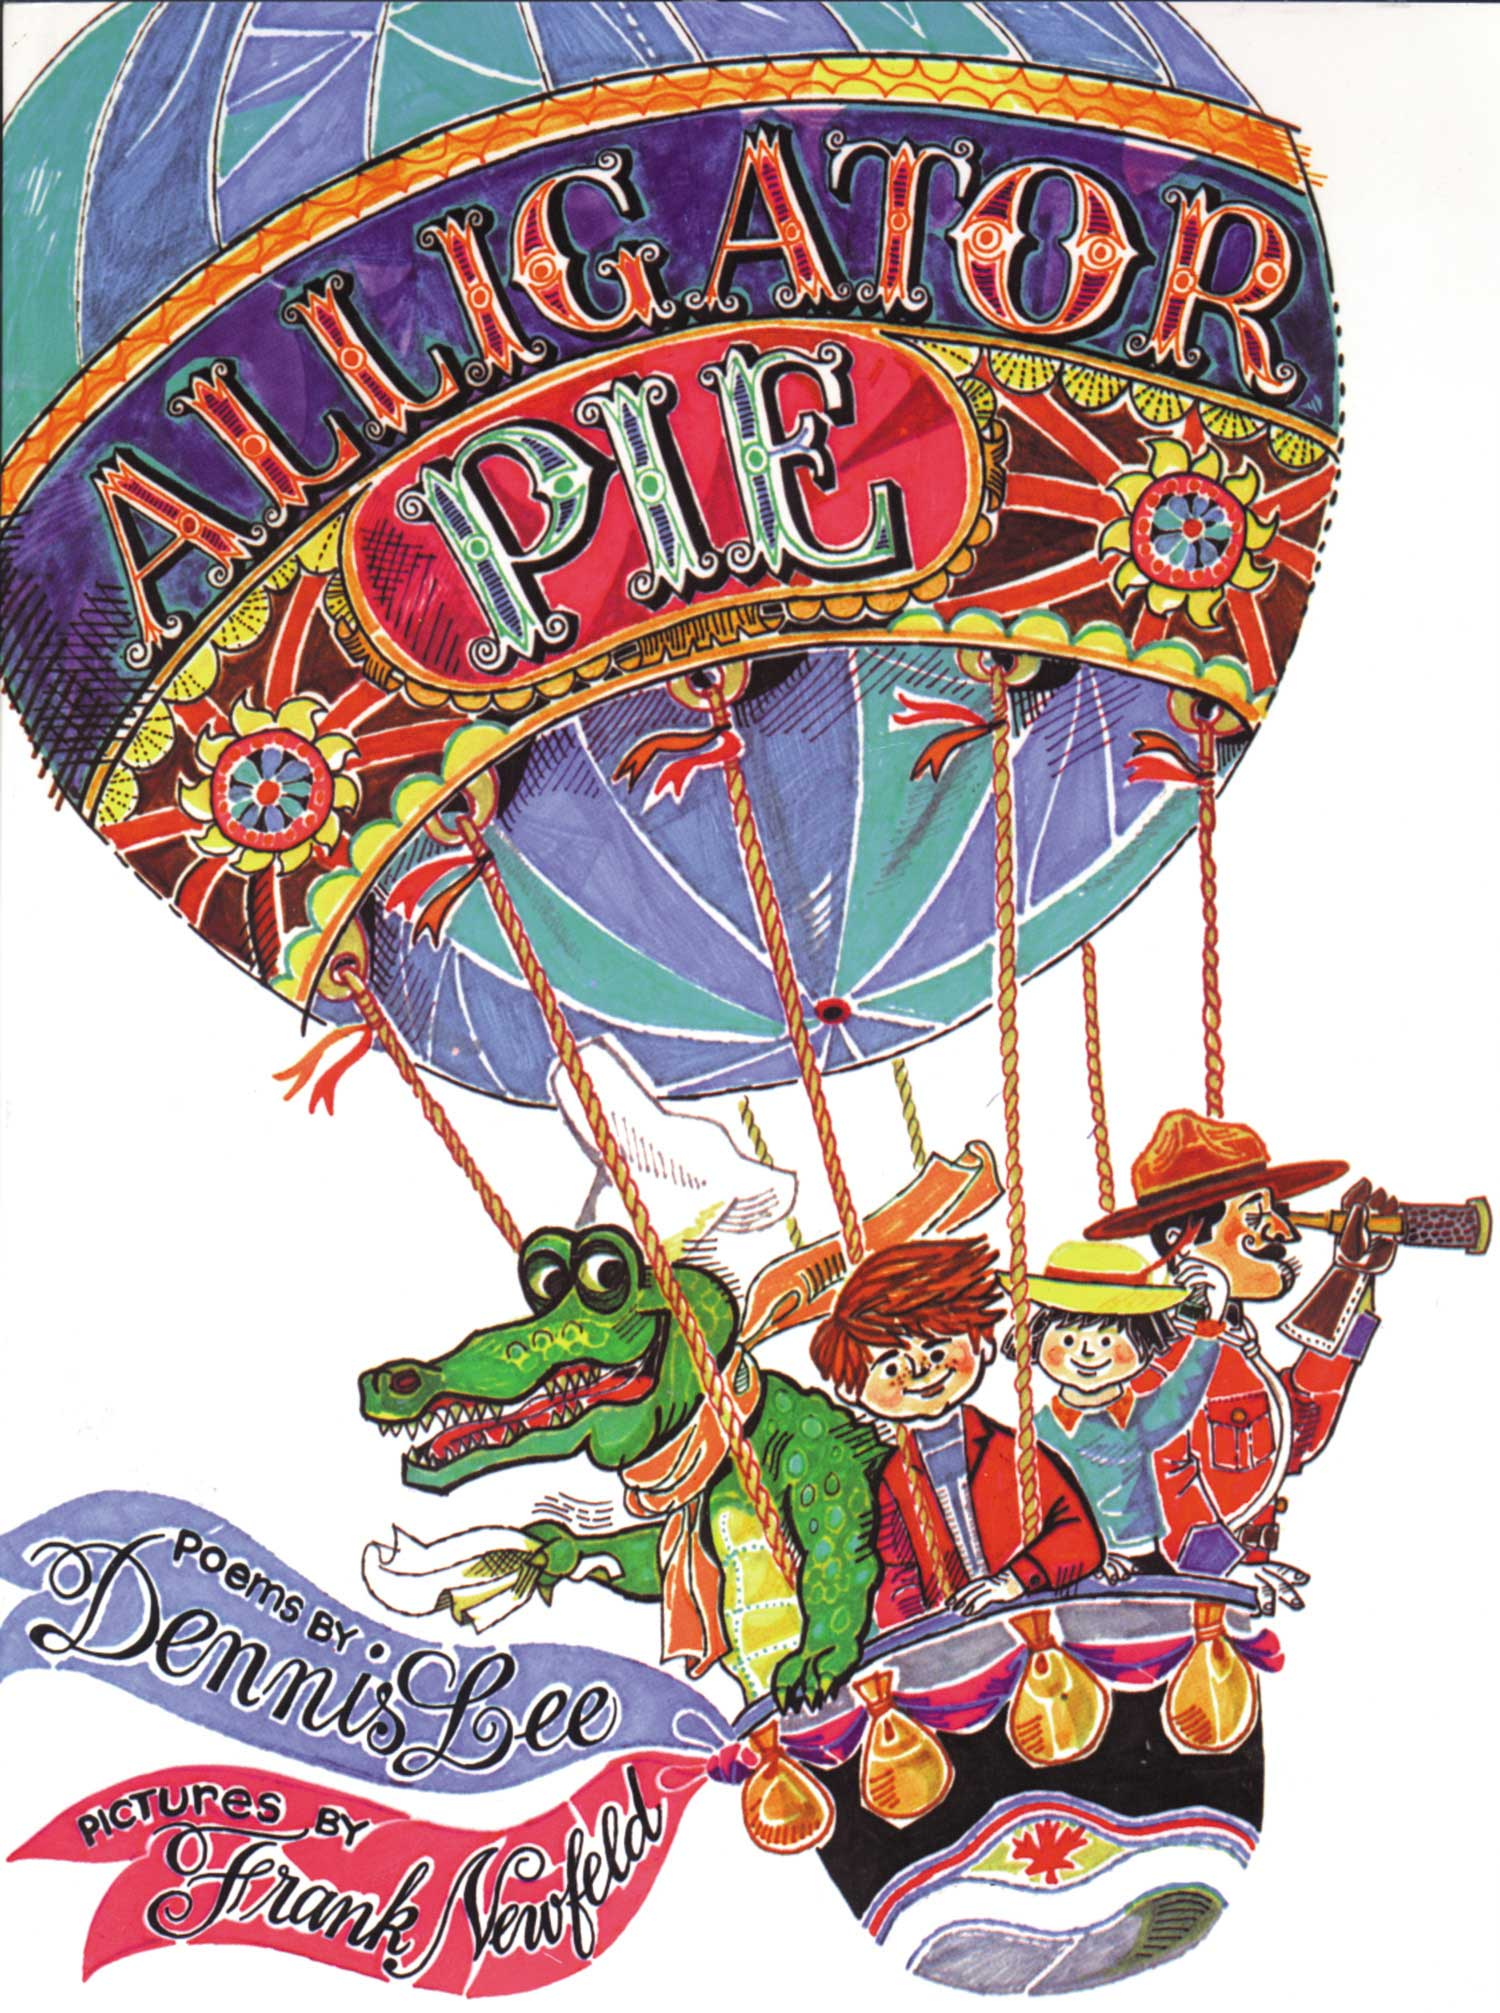 Alligator Pie, by Dennis Lee, illustrations by Jack Newfeld.                                                                                                                            A Canadian classic chock full of playful rhyming verse.                                                                                                                            Buy now: Alligator Pie